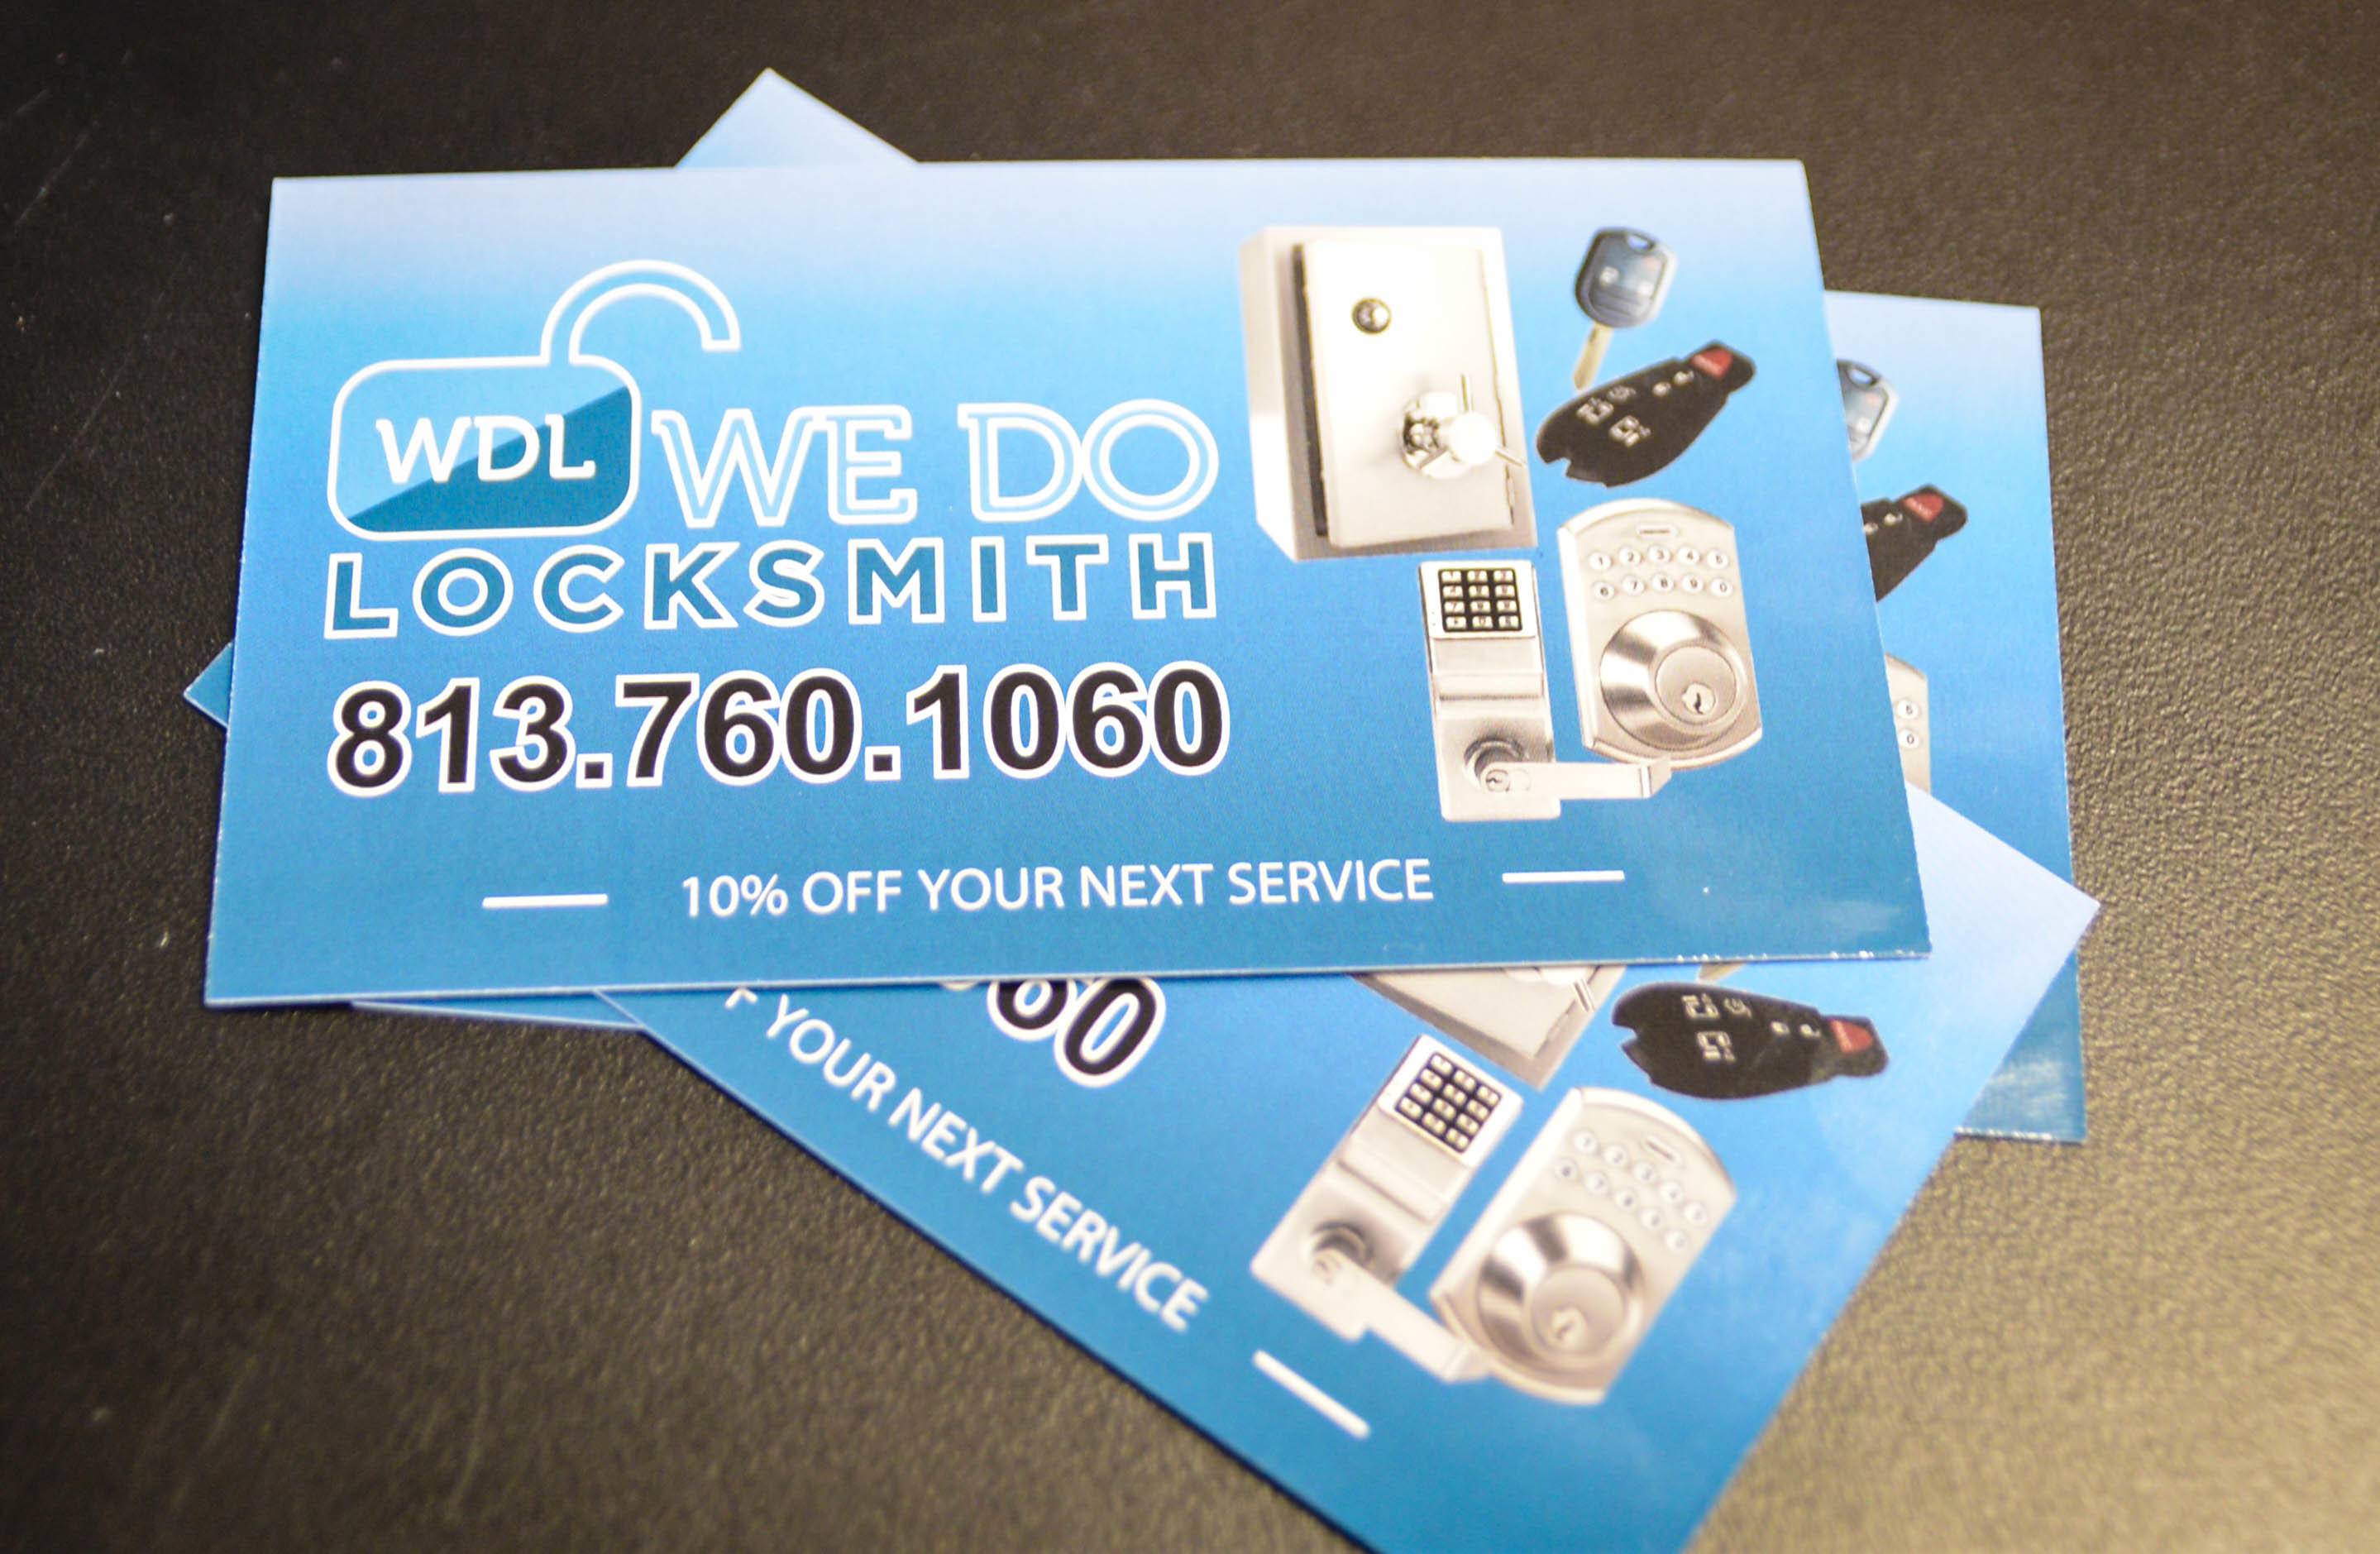 We Do Locksmith image 2